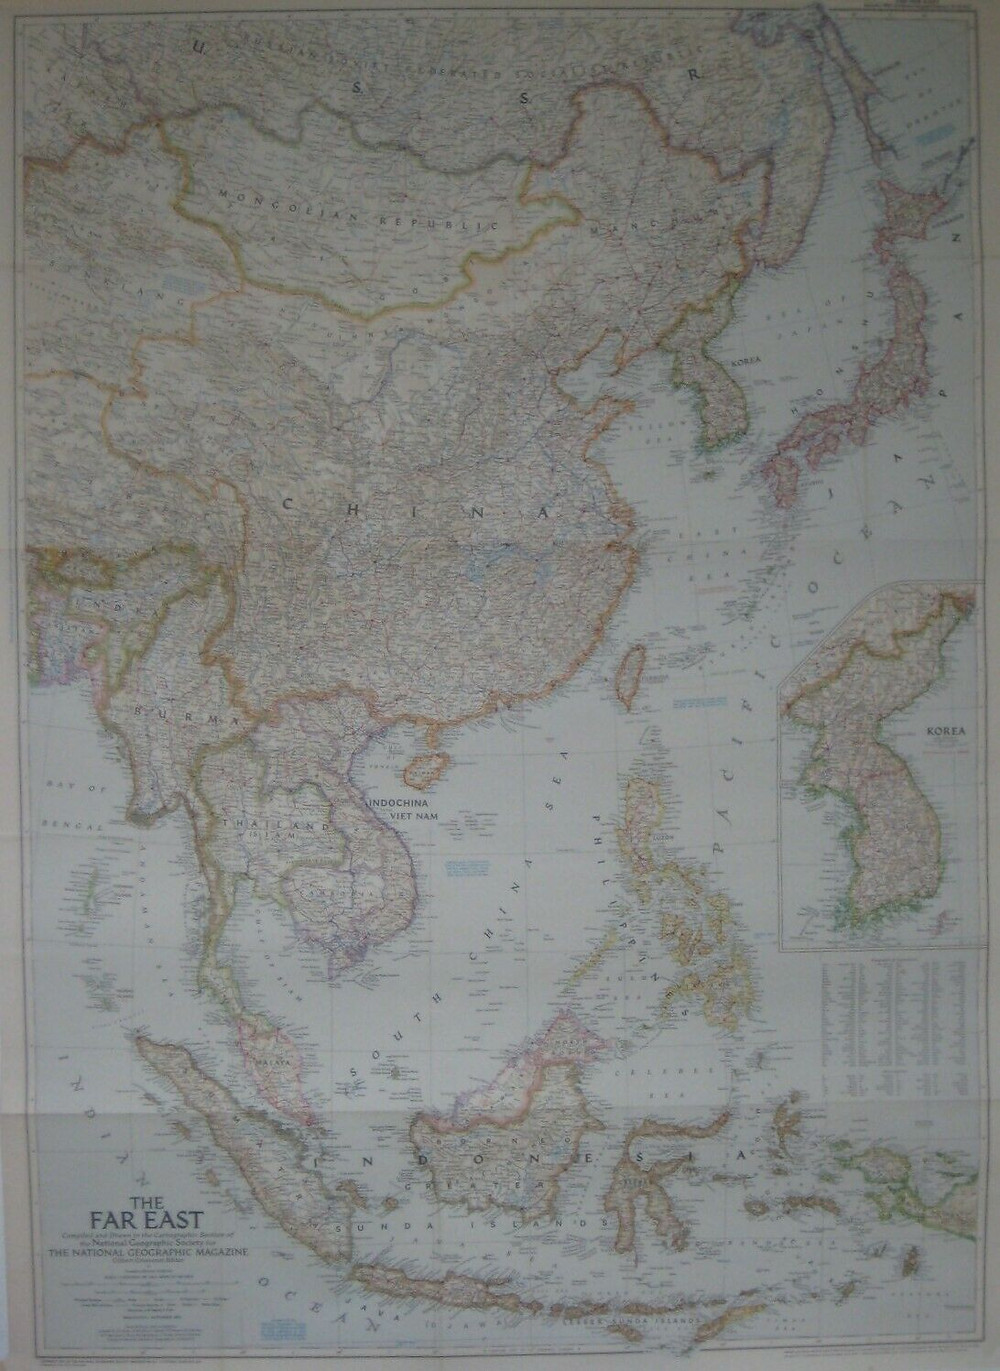 Large-format, highly detailed fold-out color lithographed map of the Far East, with an inset of Korea showing the battle line as of June 1, 1952.